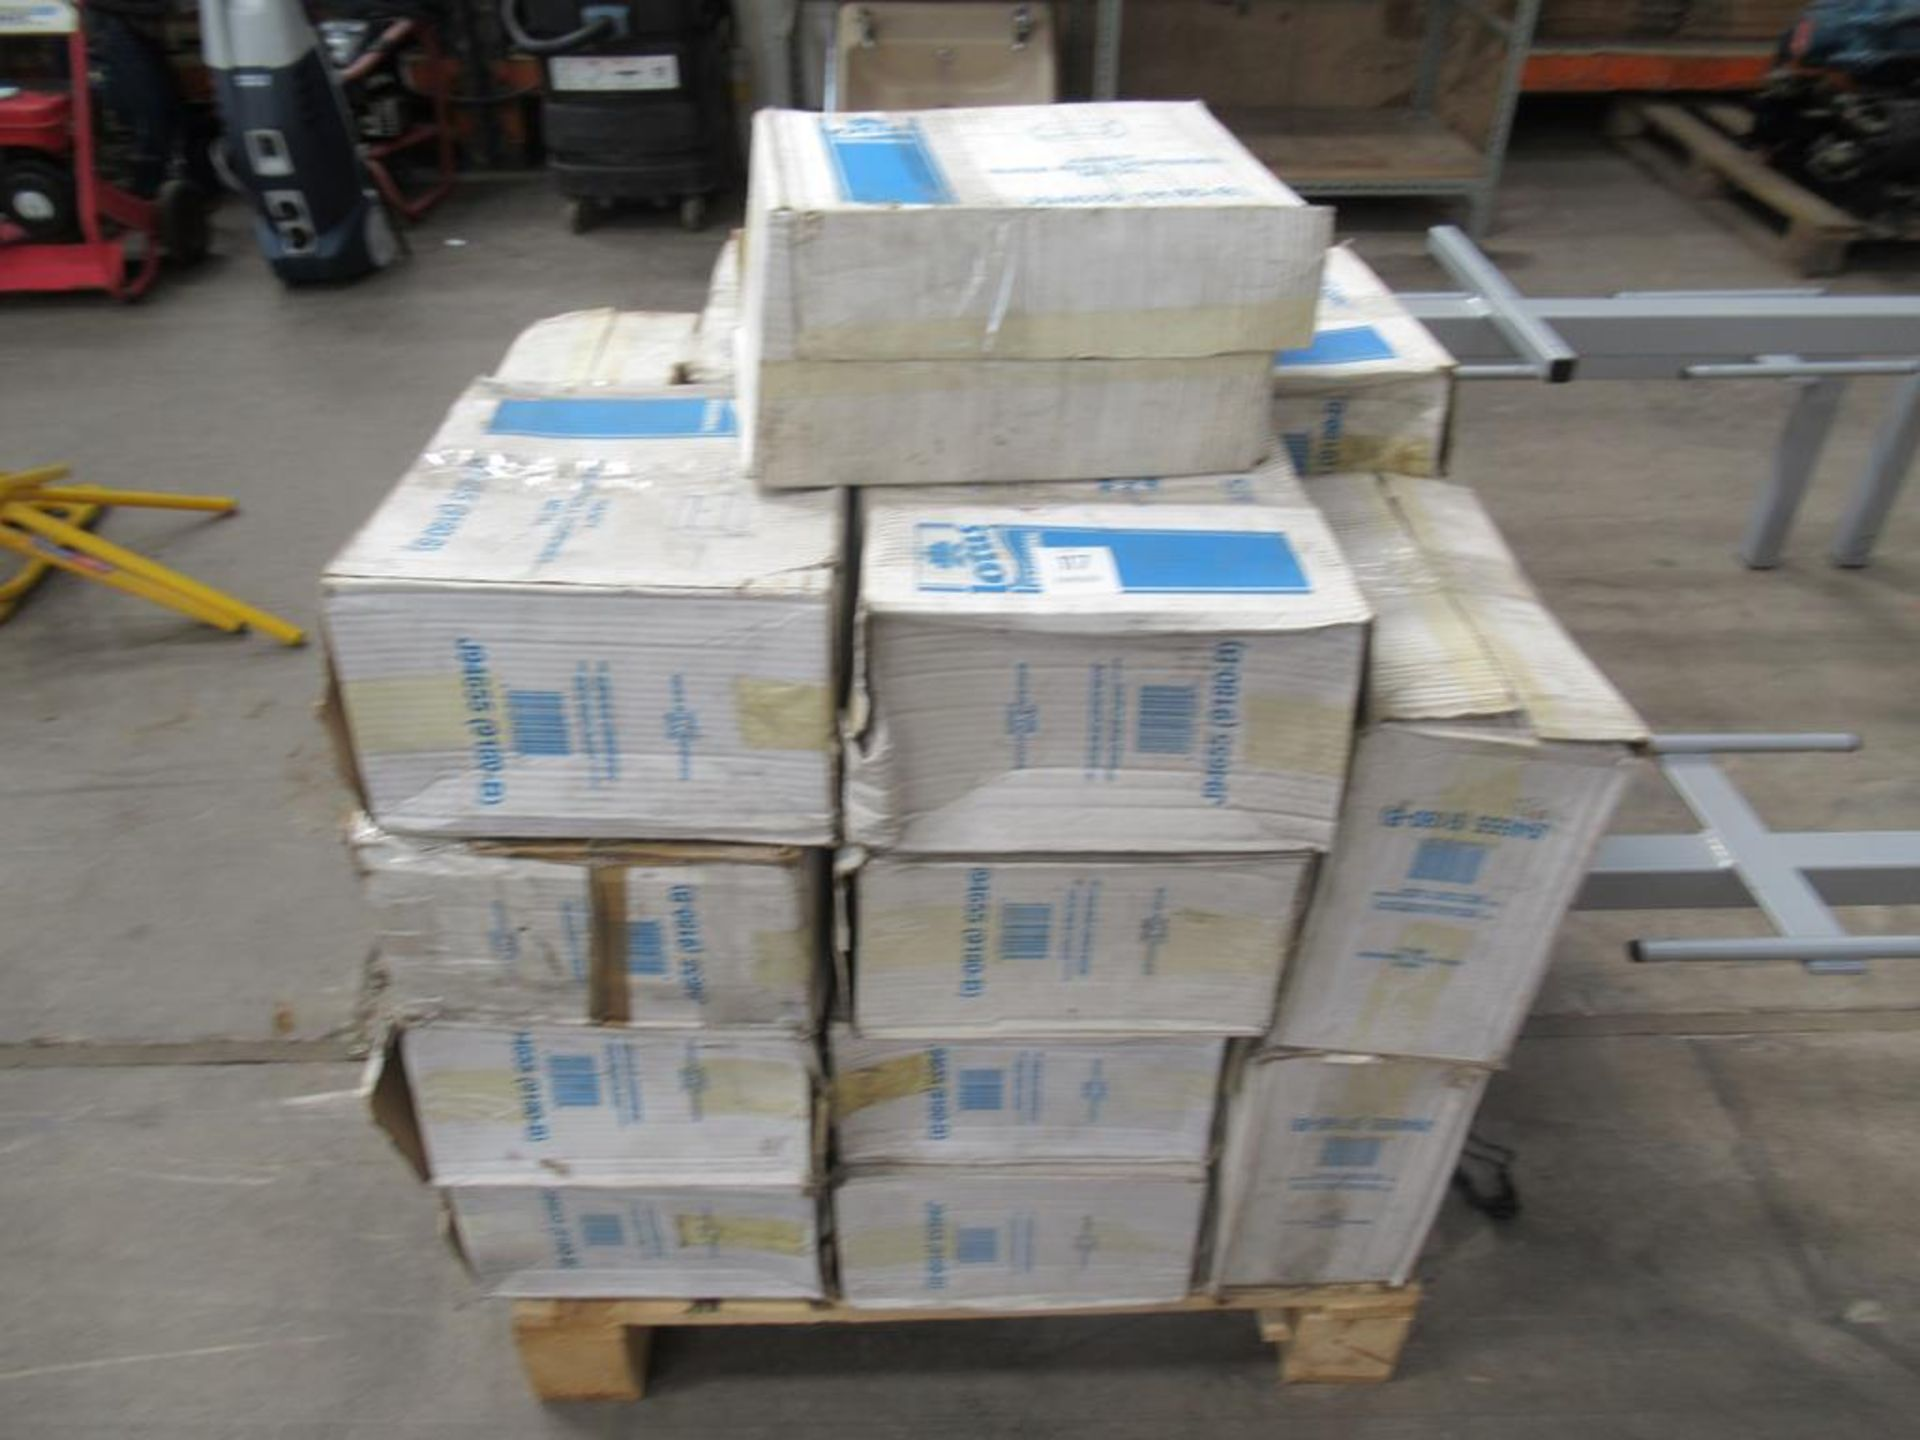 Pallet of Lotus 'handy wiper roll dispensers'